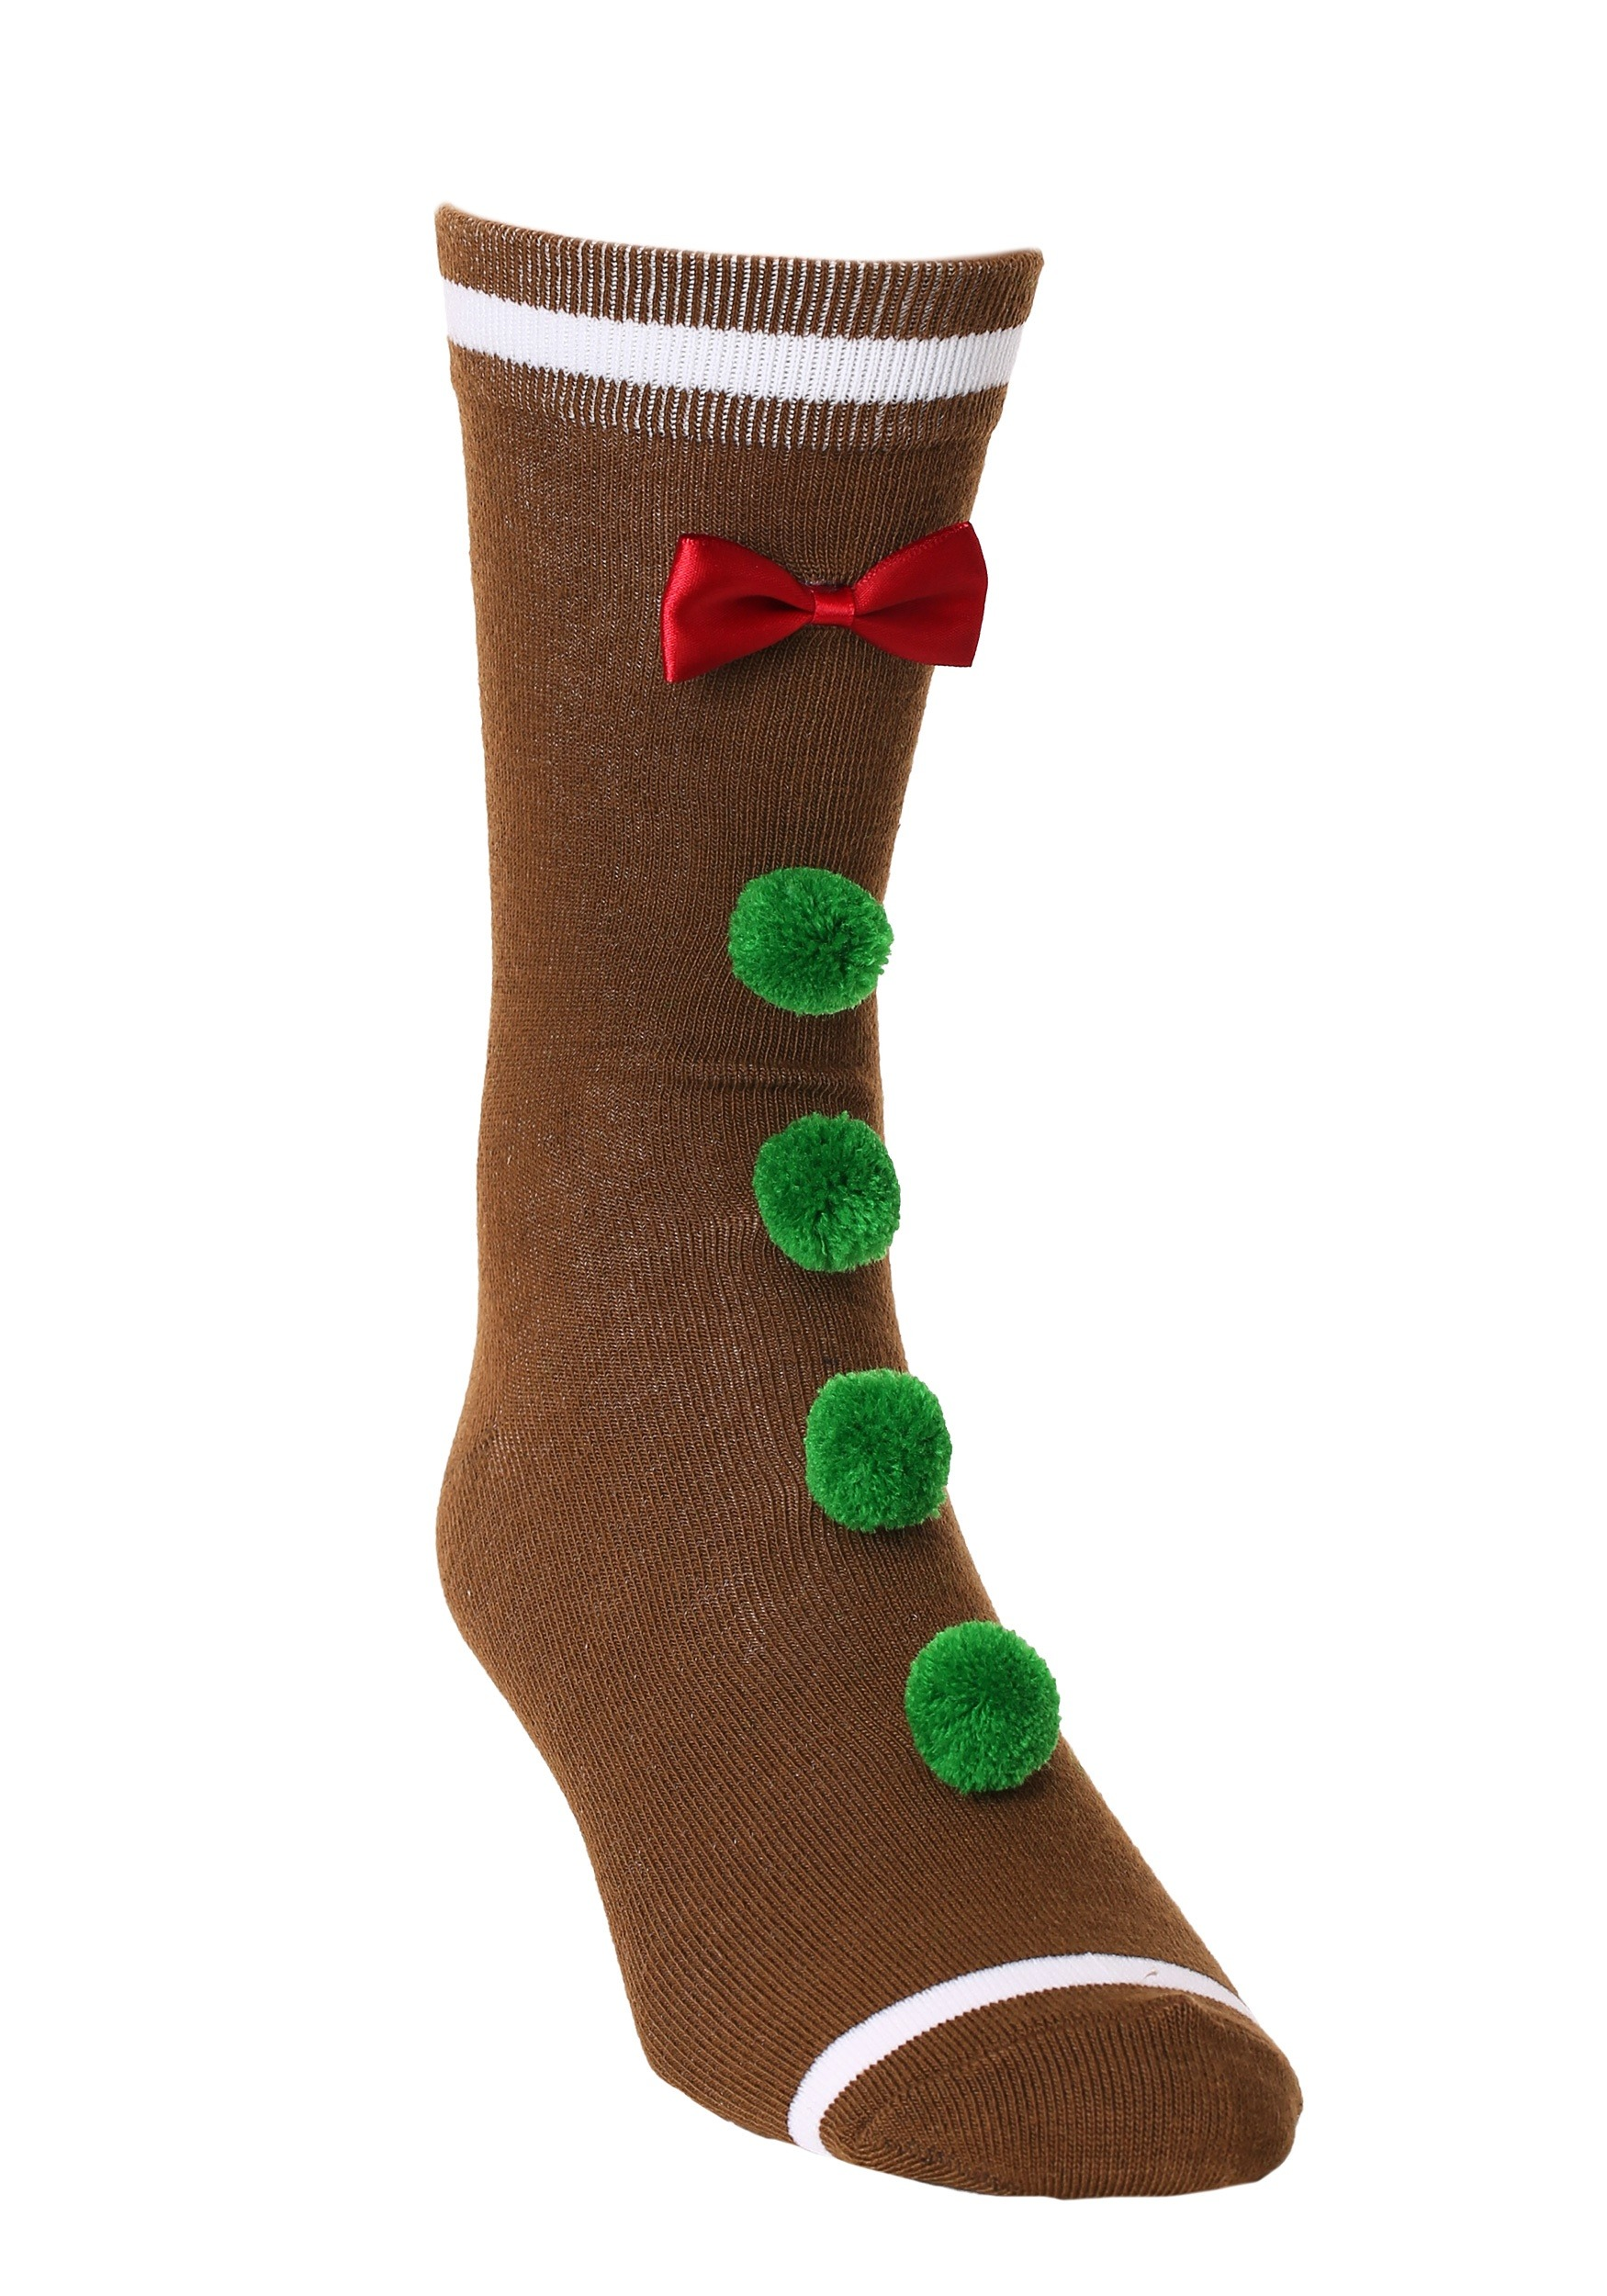 Novelty_3D_Gingerbread_Man_Crew_Socks